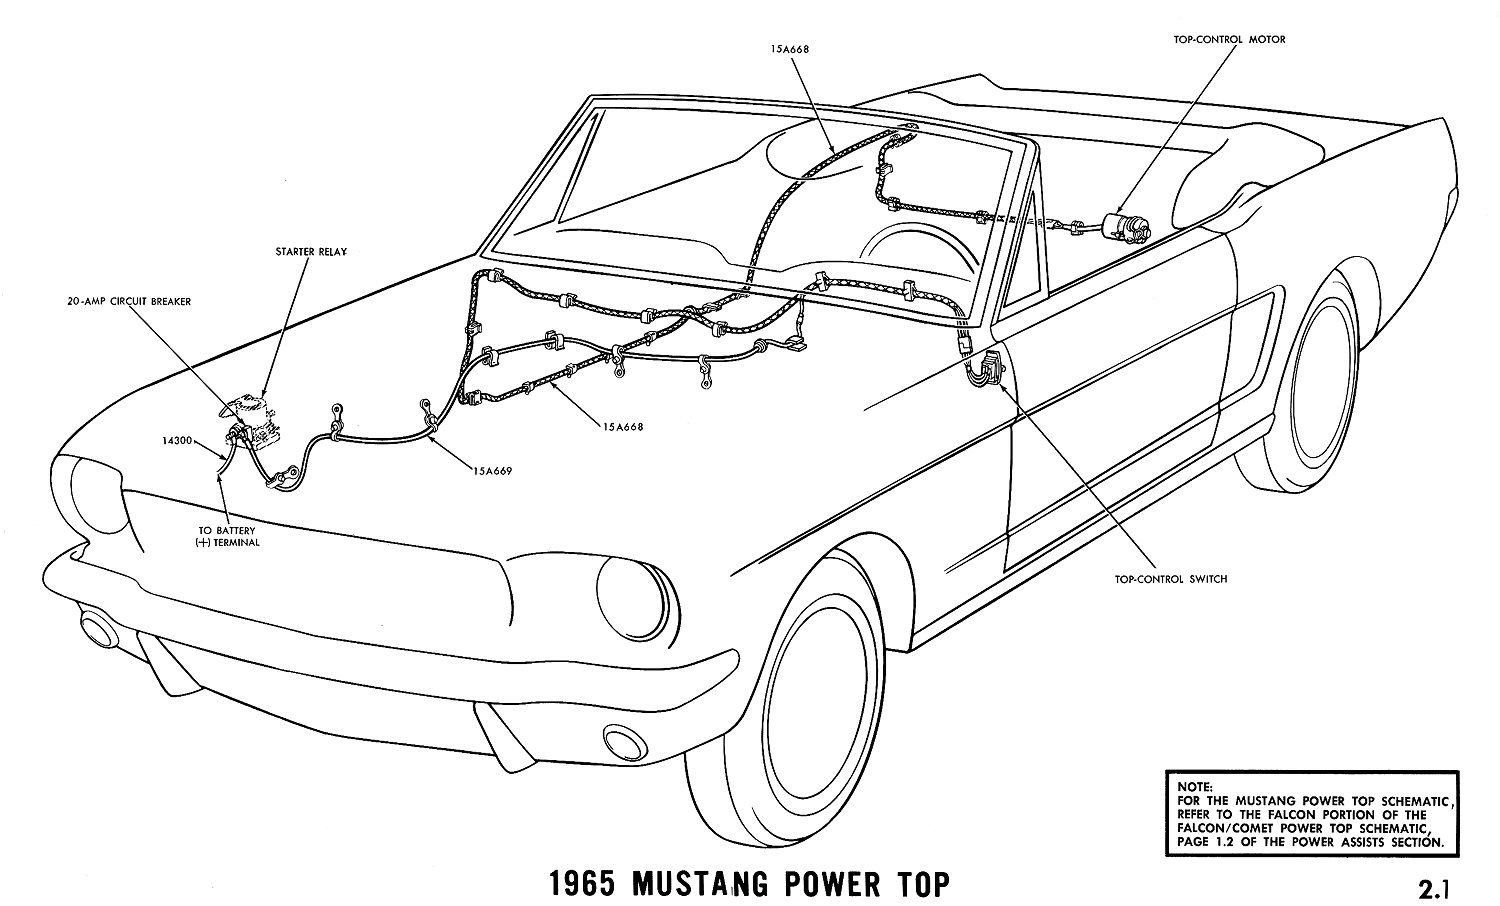 1965 mustang wiring diagrams average joe restoration Air Conditioner Pictorial Wiring-Diagram 1964 Mustang Wiring Diagram Winch Wiring Diagram on pictorial wiring diagram